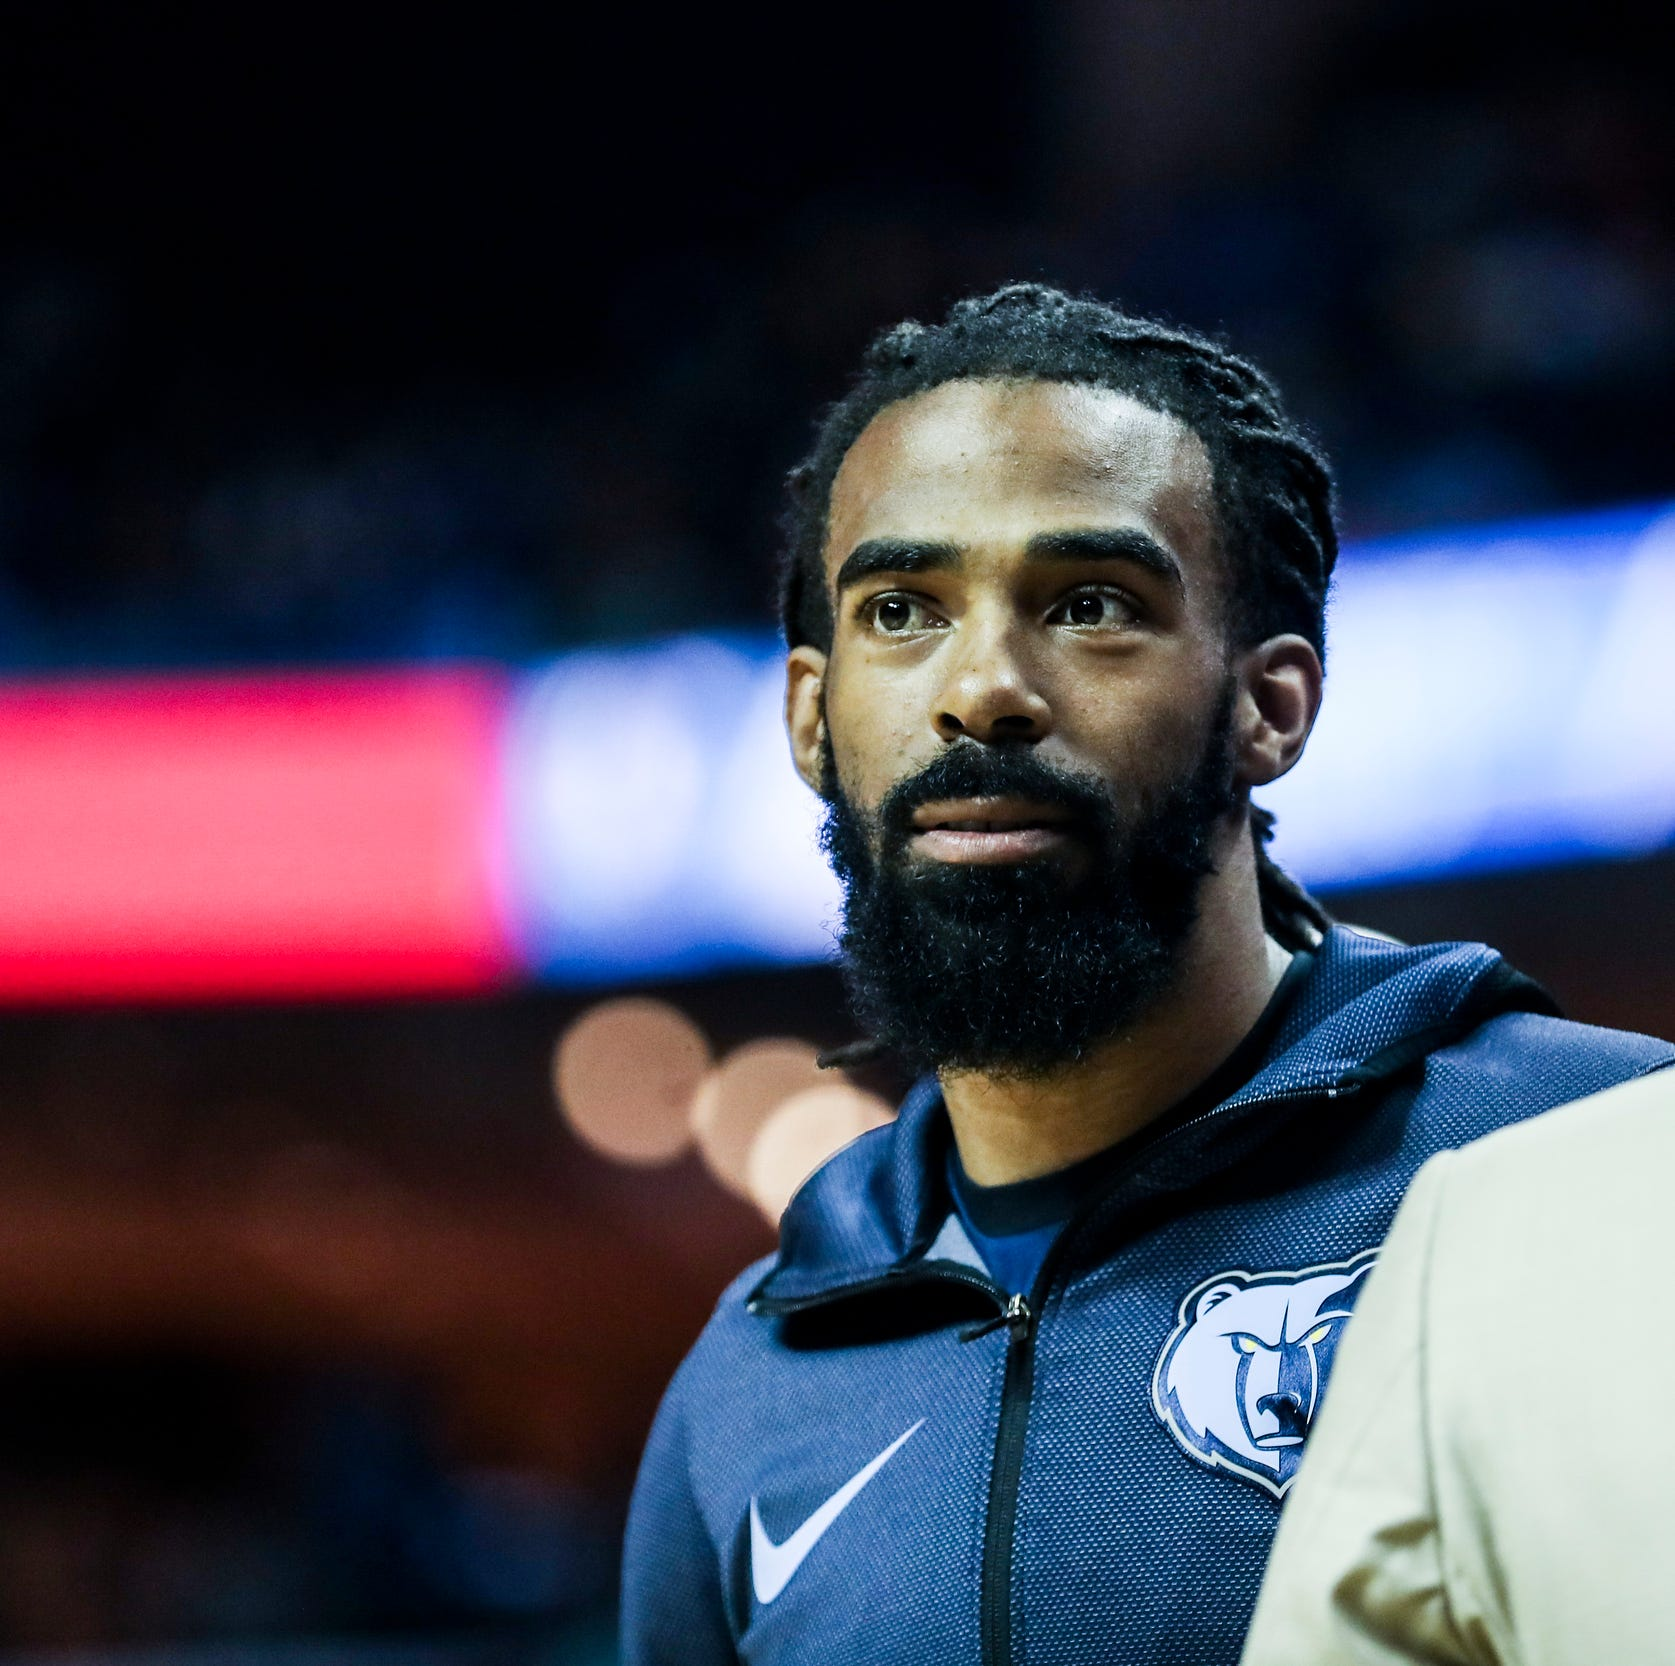 Mike Conley wants a ring, so will he be bitter if Grizzlies don't trade him?